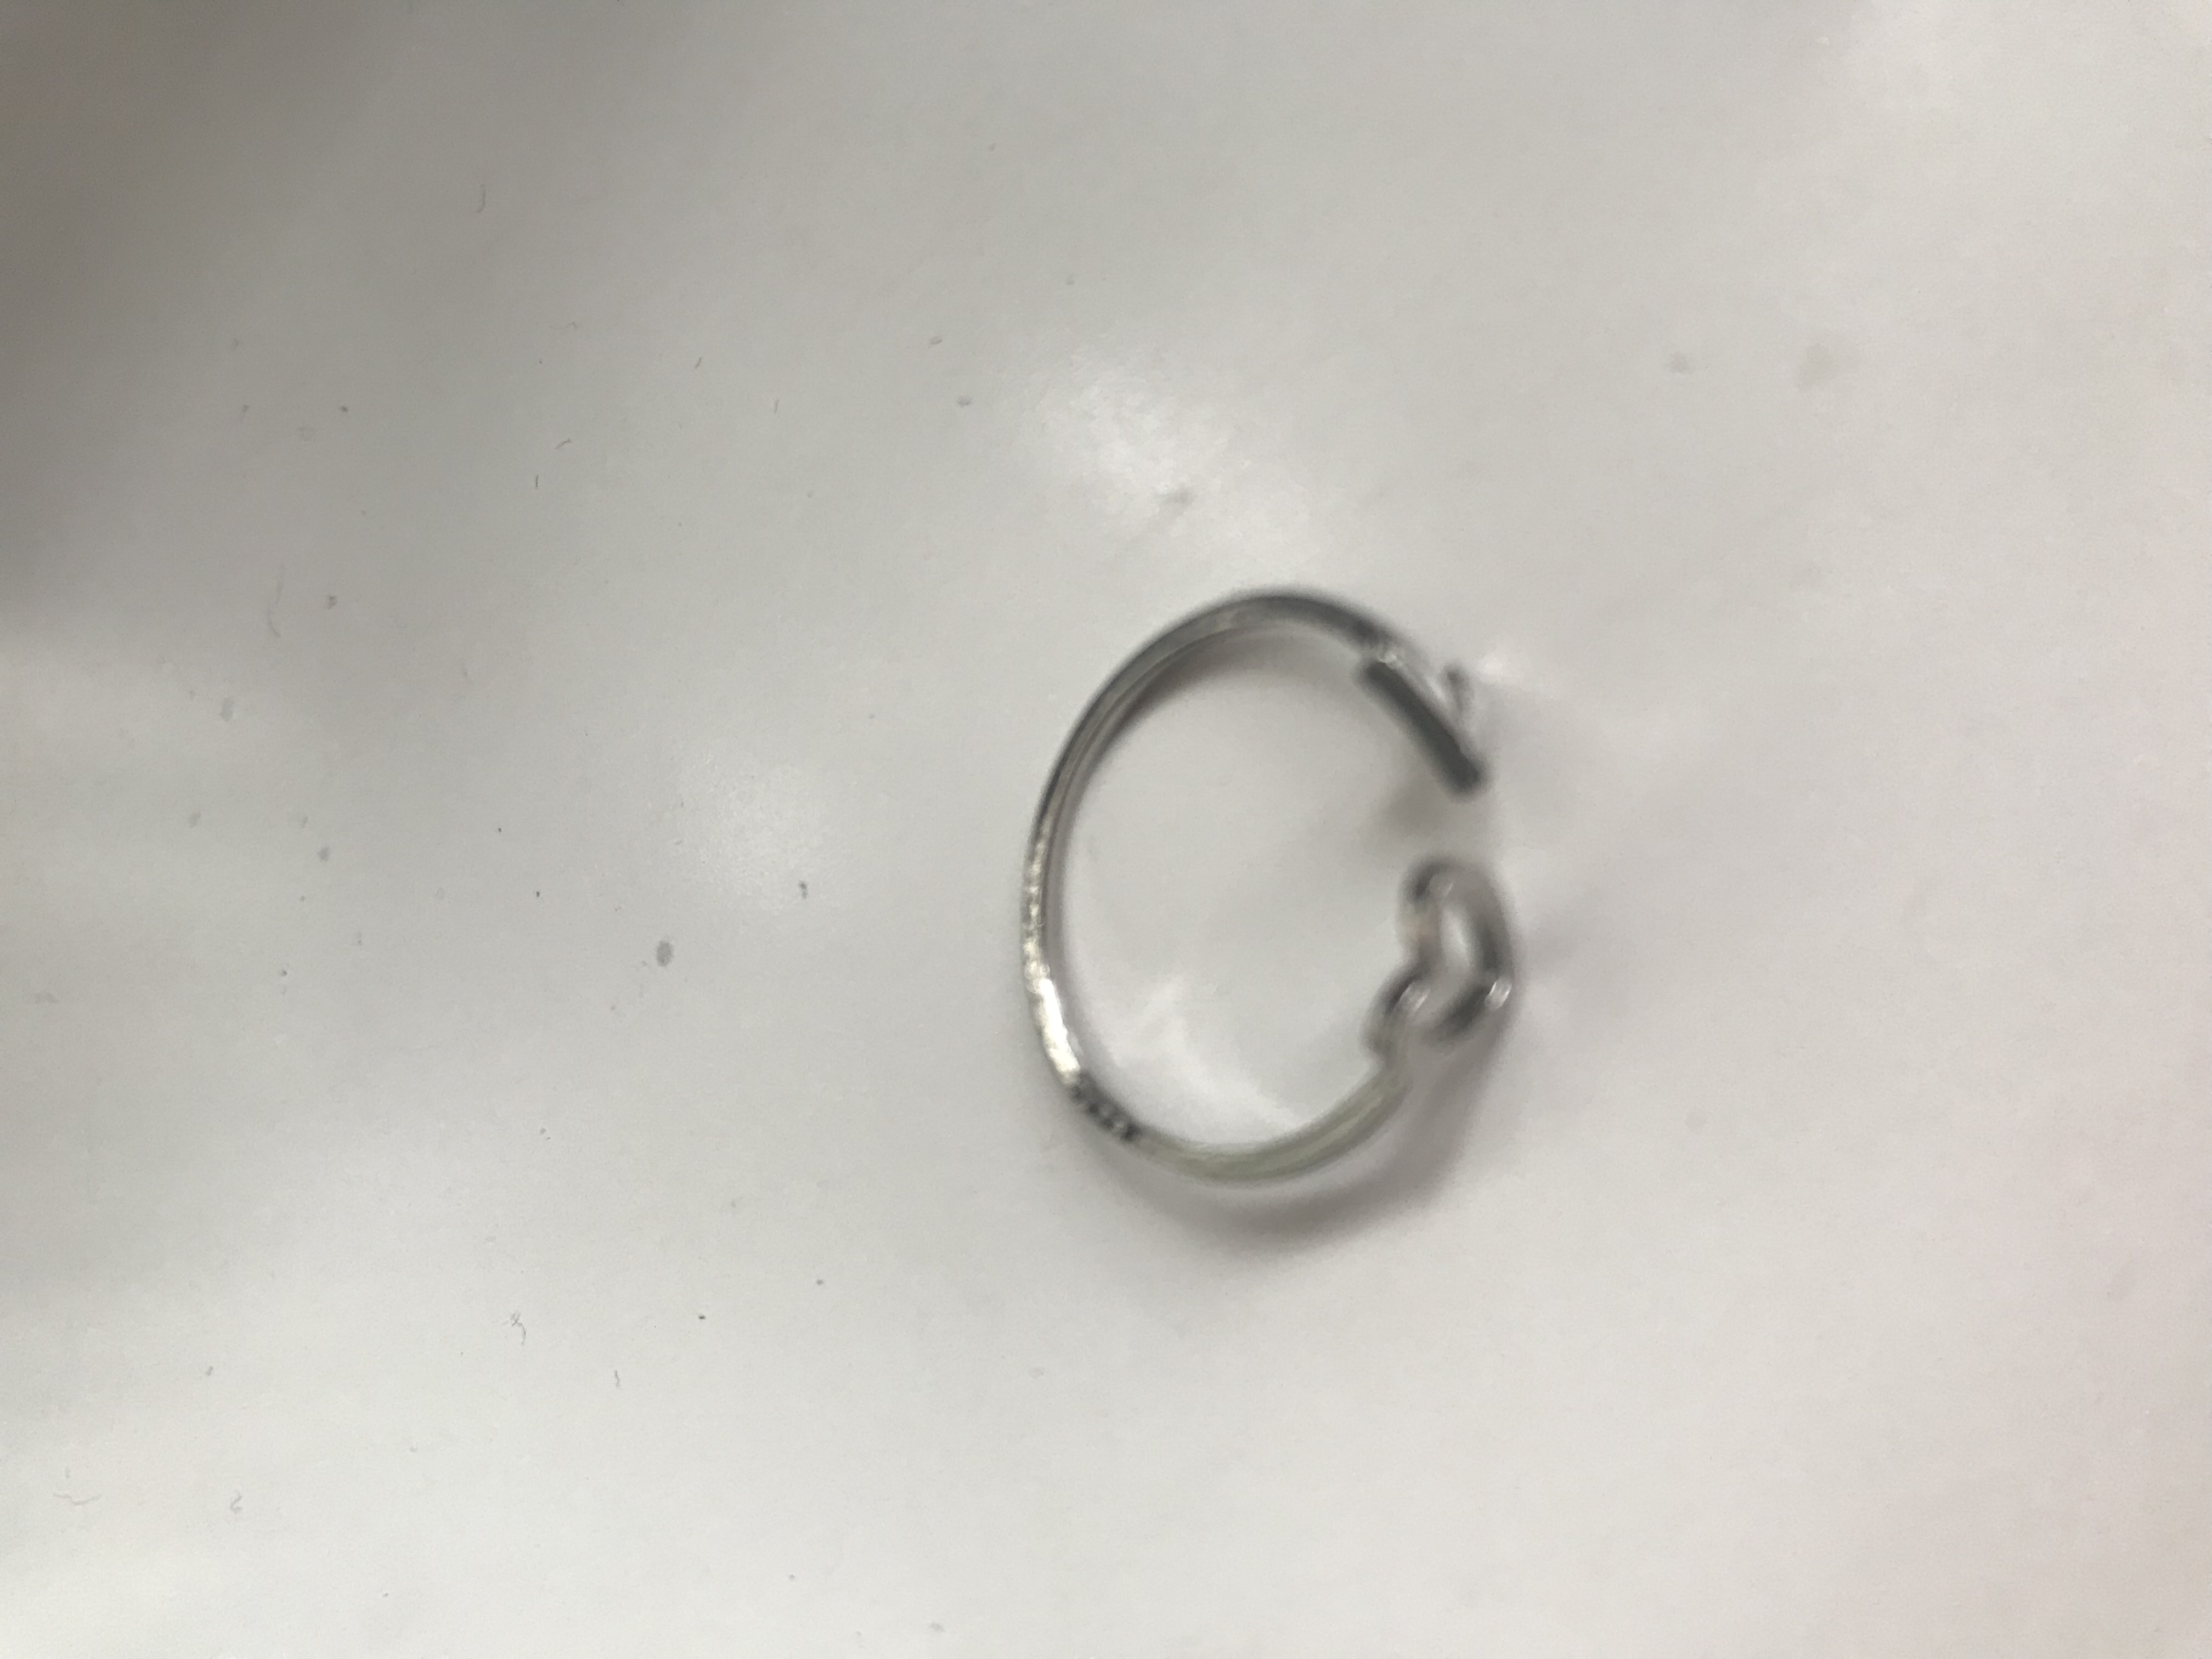 Love this ring so small and dainty l, nice gift for someone